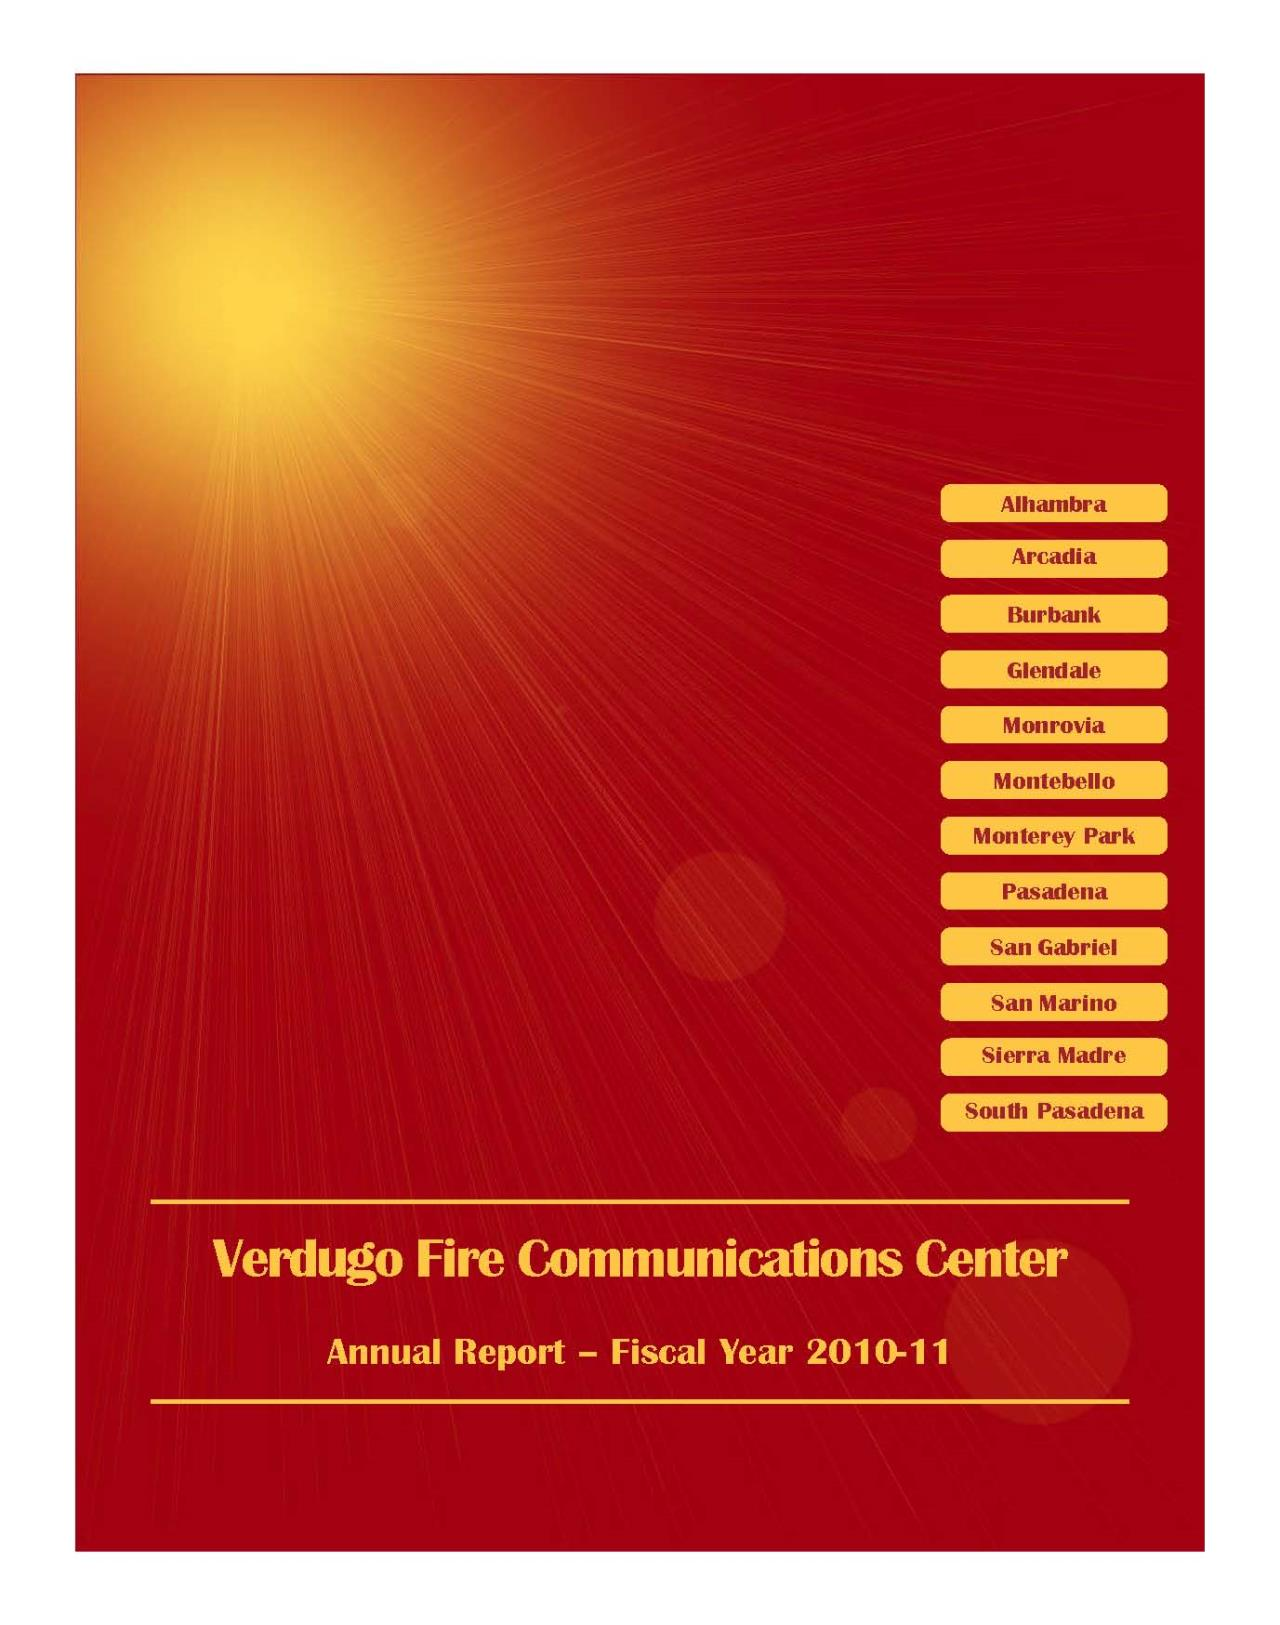 FY 2010-2011 annual report Cover